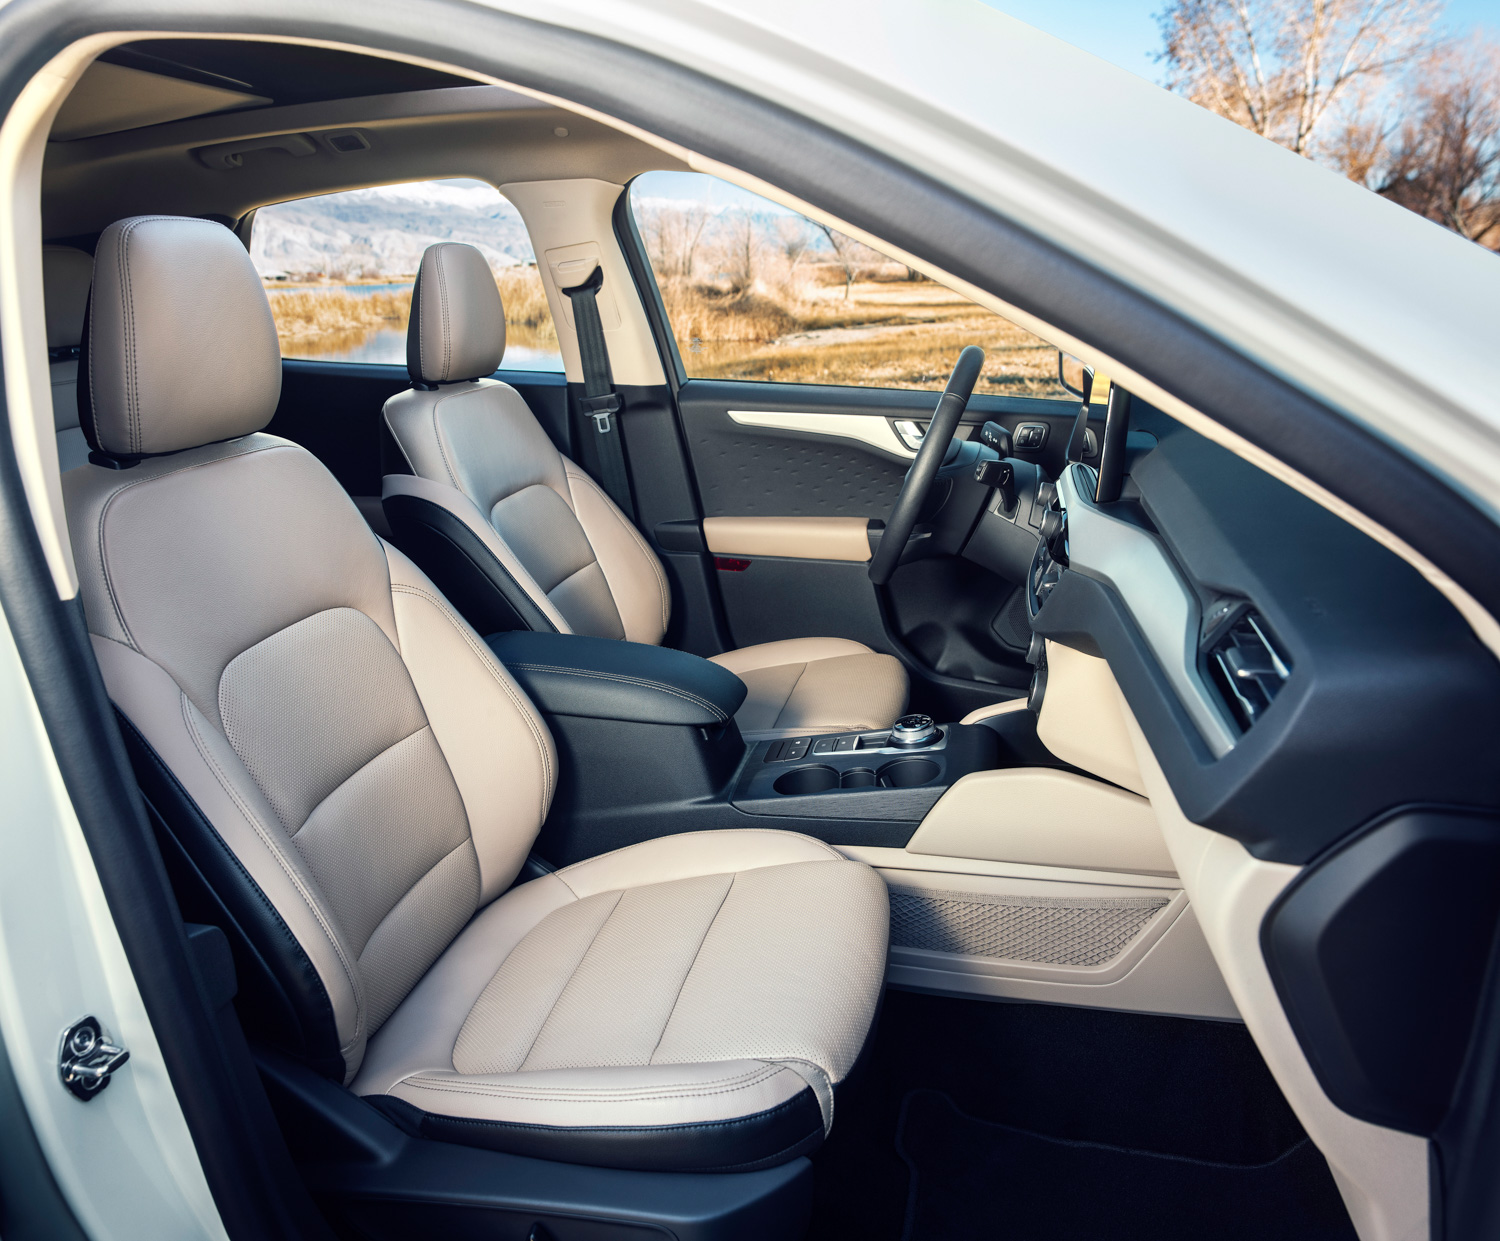 2020 Ford Escape passenger seat